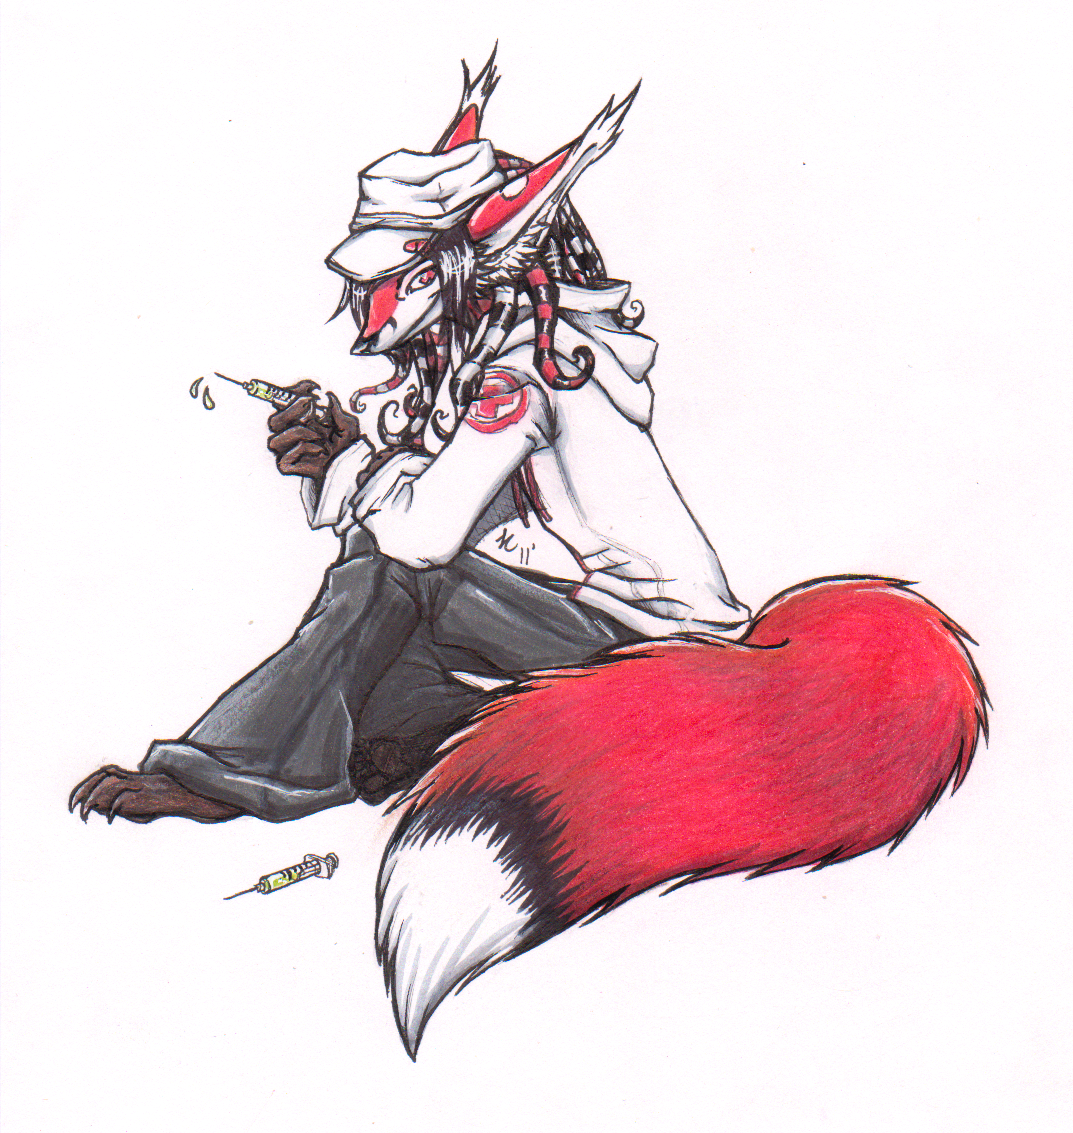 e926 + anthro arm_on_leg barefoot bent_legs big_tail biped black_claws black_hair black_markings black_tail brown_skin canine claws clothed clothing colored_pencil_(artwork) dipstick_tail dreadlocks ear_tuft fluffy fluffy_tail fox full-length_portrait fur grey_pants hair hat highlights holding_object hoodie inner_ear_fluff lapfox_trax long_hair looking_at_viewer male mammal marker_(artwork) markings mixed_media multicolored_tail nurse pen_(artwork) portrait red_ears red_eyes red_fur red_tail renard_queenston shirt_logo shukketsu-kokoro side_view simple_background sitting smile snout solo striped_fur striped_tentacles stripes syringe tentacle_hair tentacles traditional_media_(artwork) tuft white_background white_highlights white_markings white_shirt white_tail